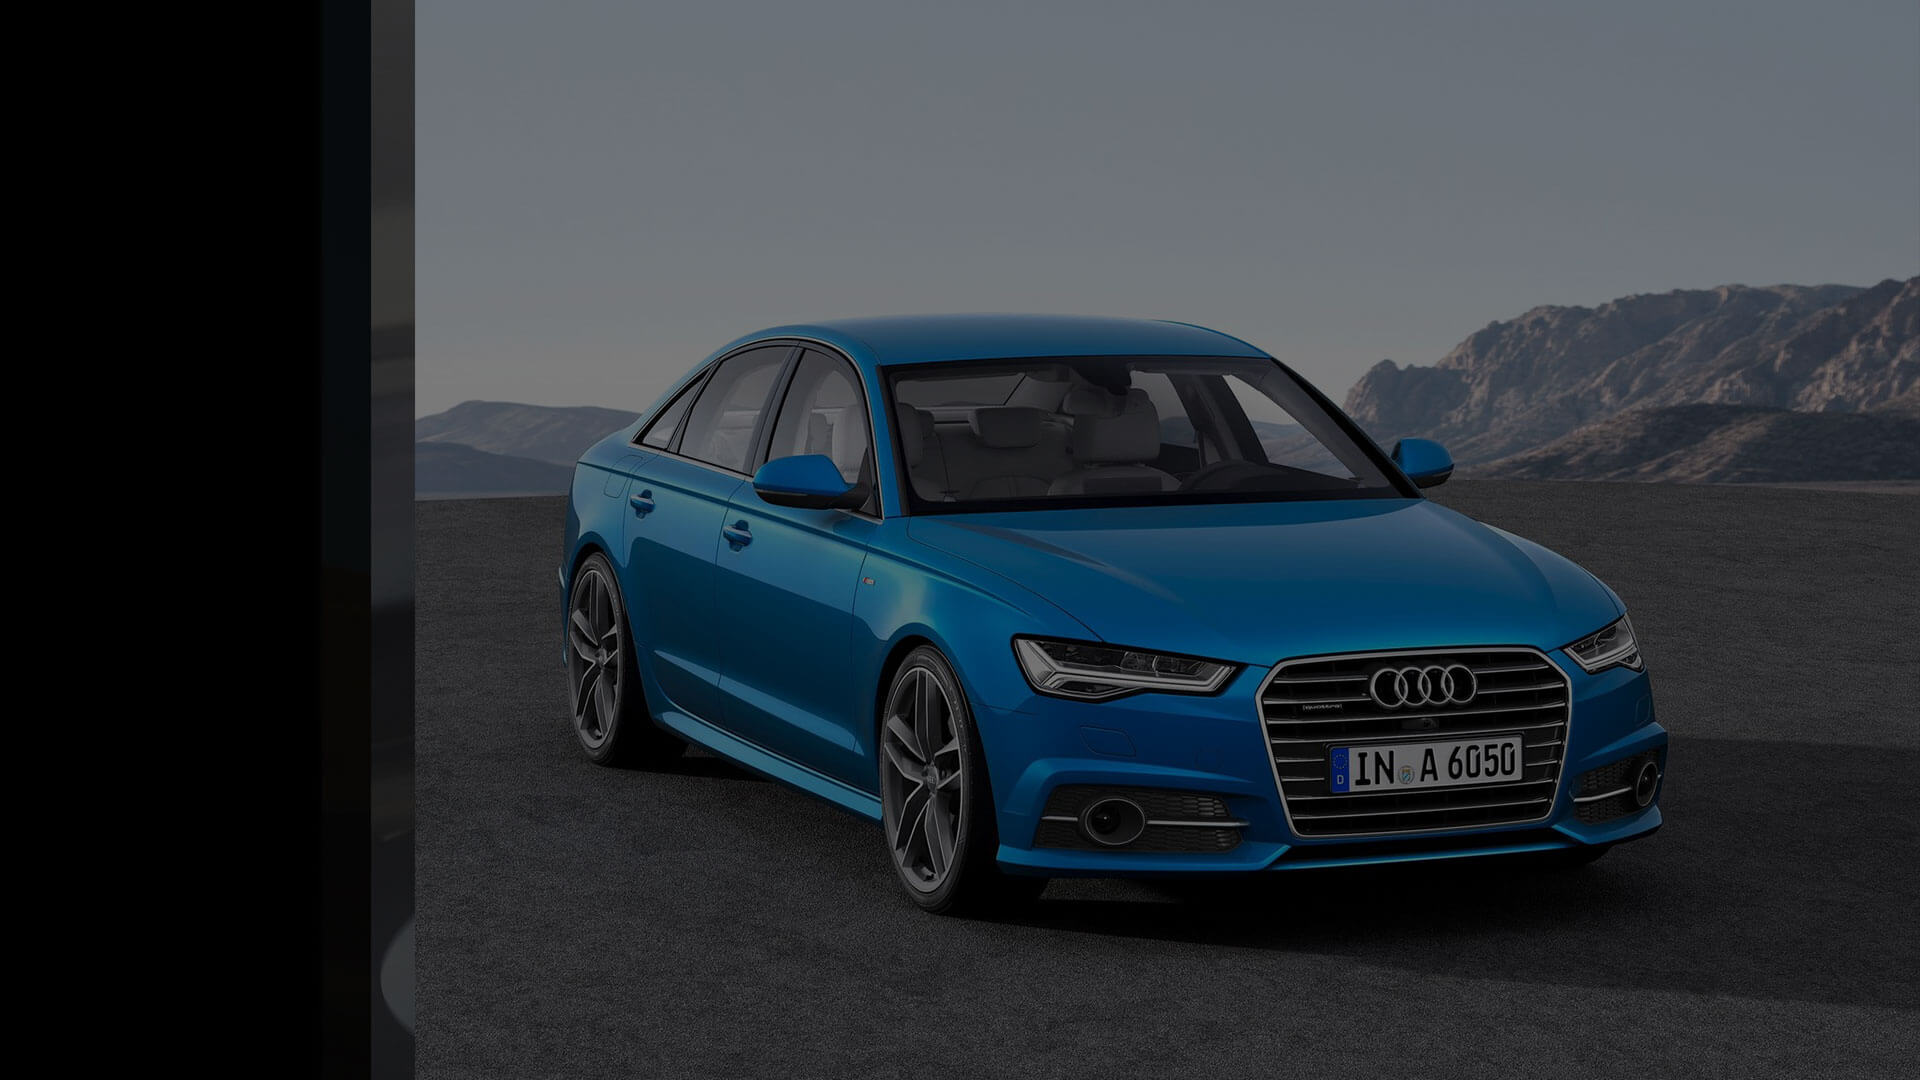 Audi A6 / S6 / RS6 C7   Carista OBD2 supported vehicles   See what's